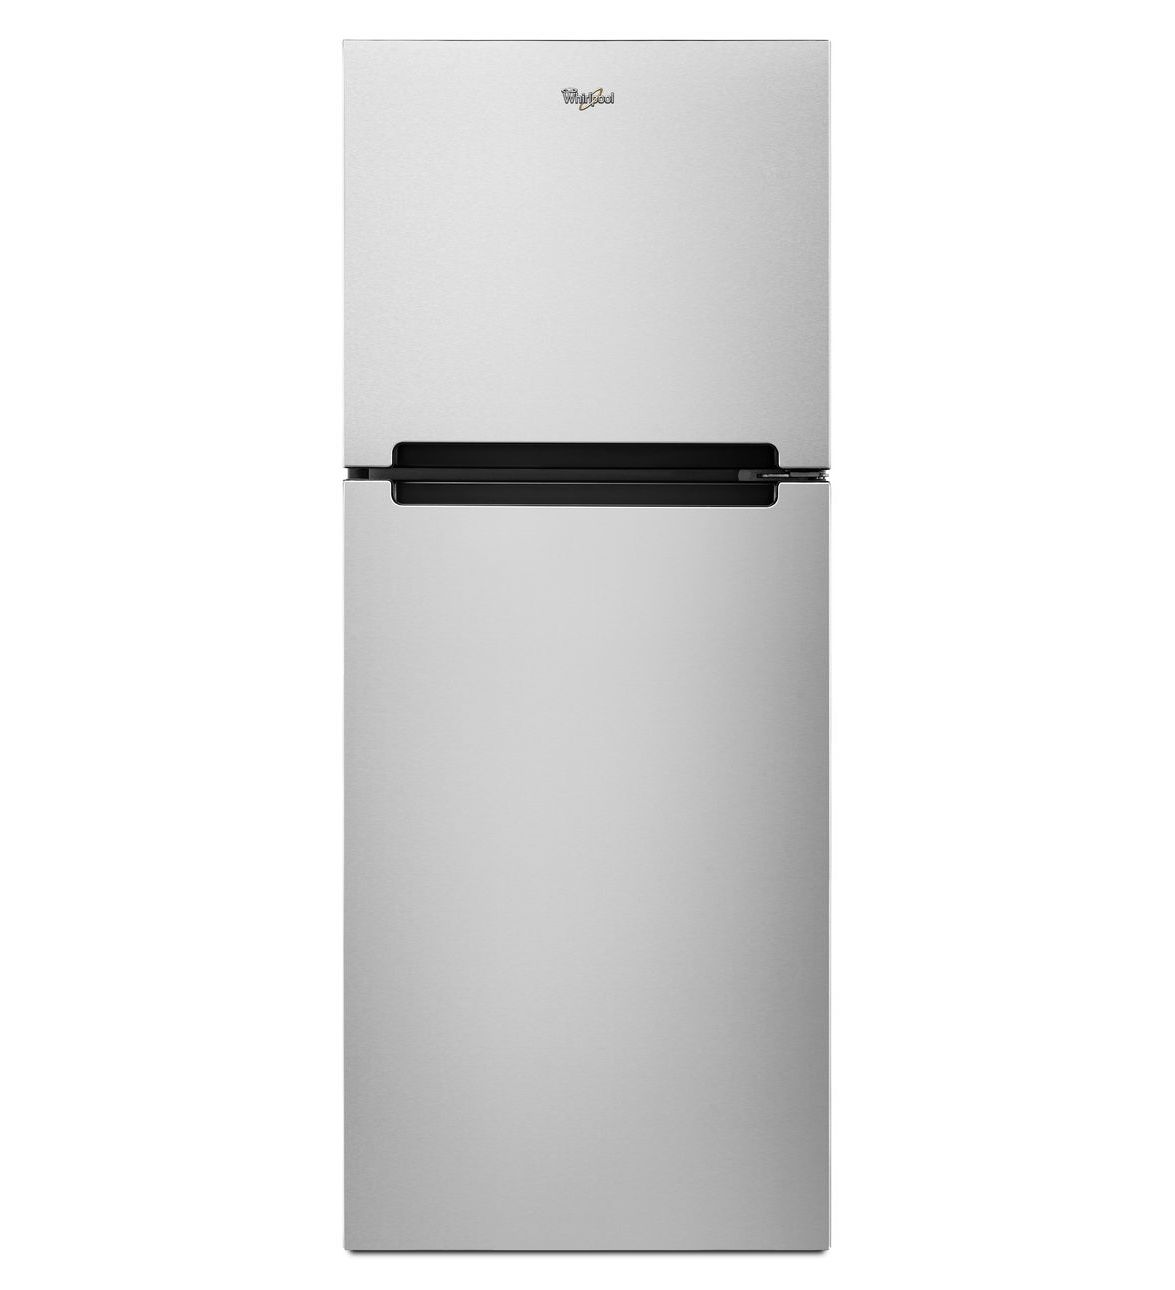 whirlpool 25 inches wide top freezer refrigerator more colors master technicians ltd. Black Bedroom Furniture Sets. Home Design Ideas